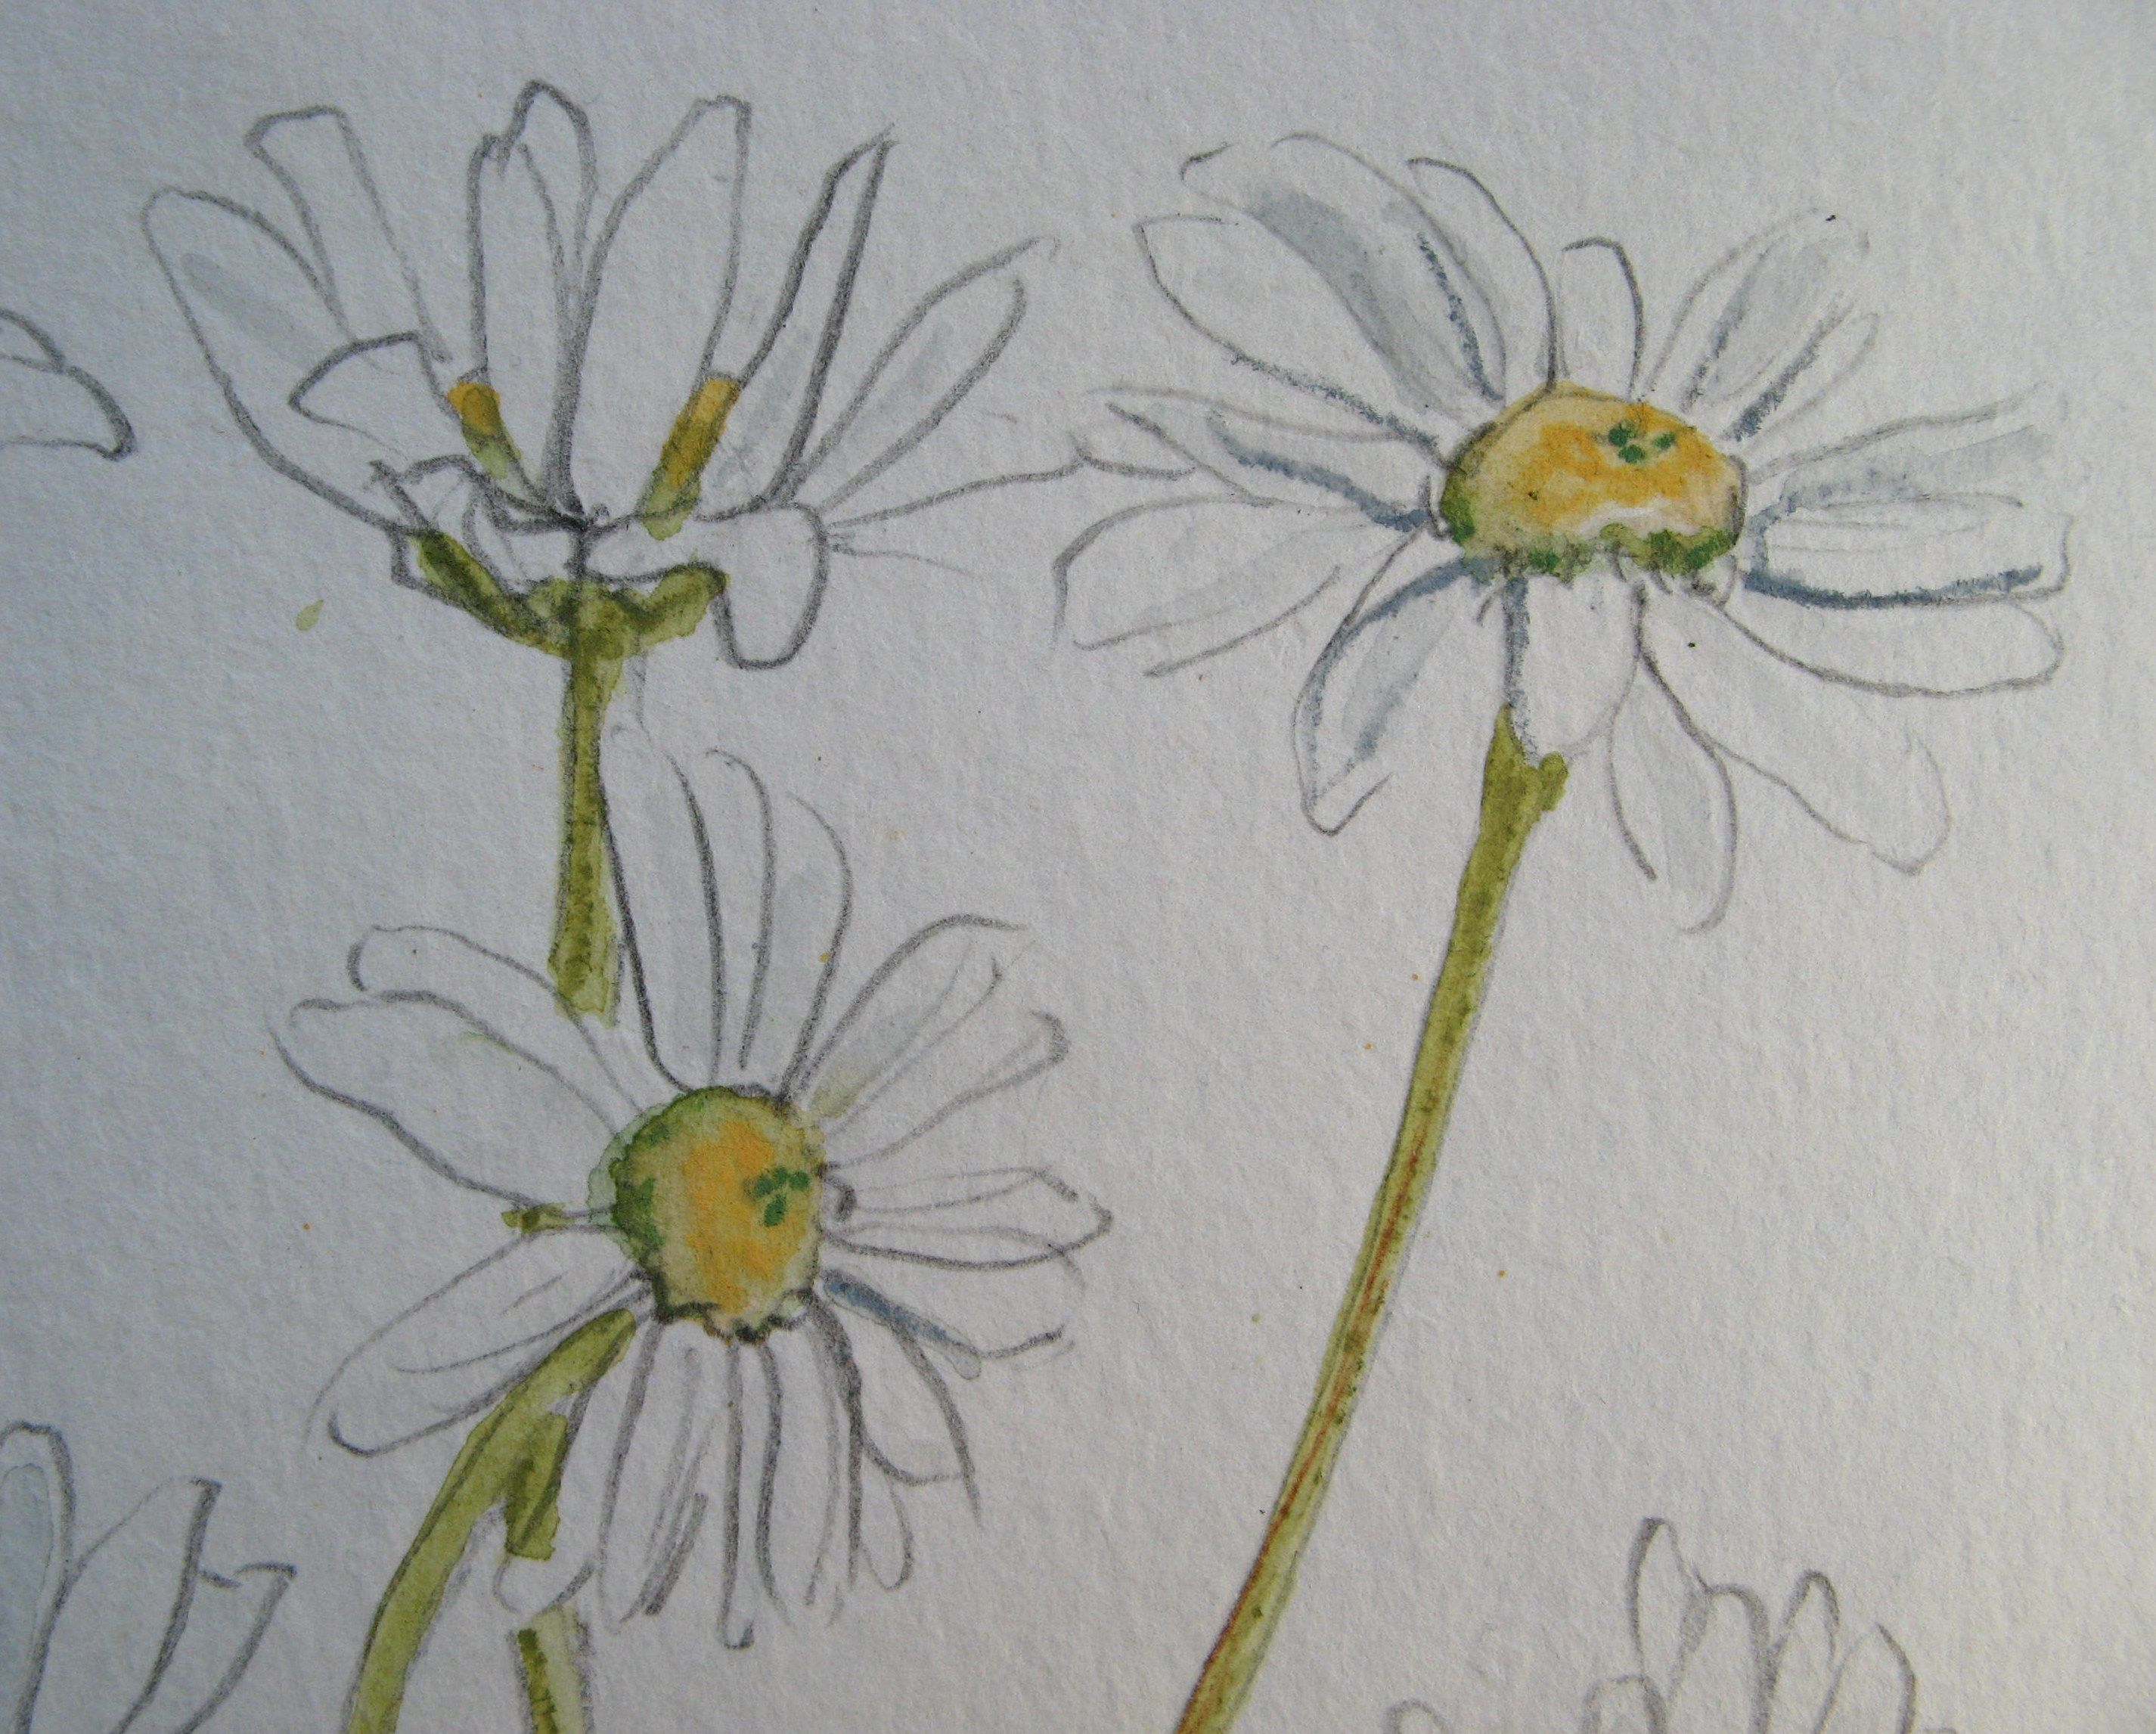 Daisy Flower Line Drawing : Daisey drawing at getdrawings free for personal use